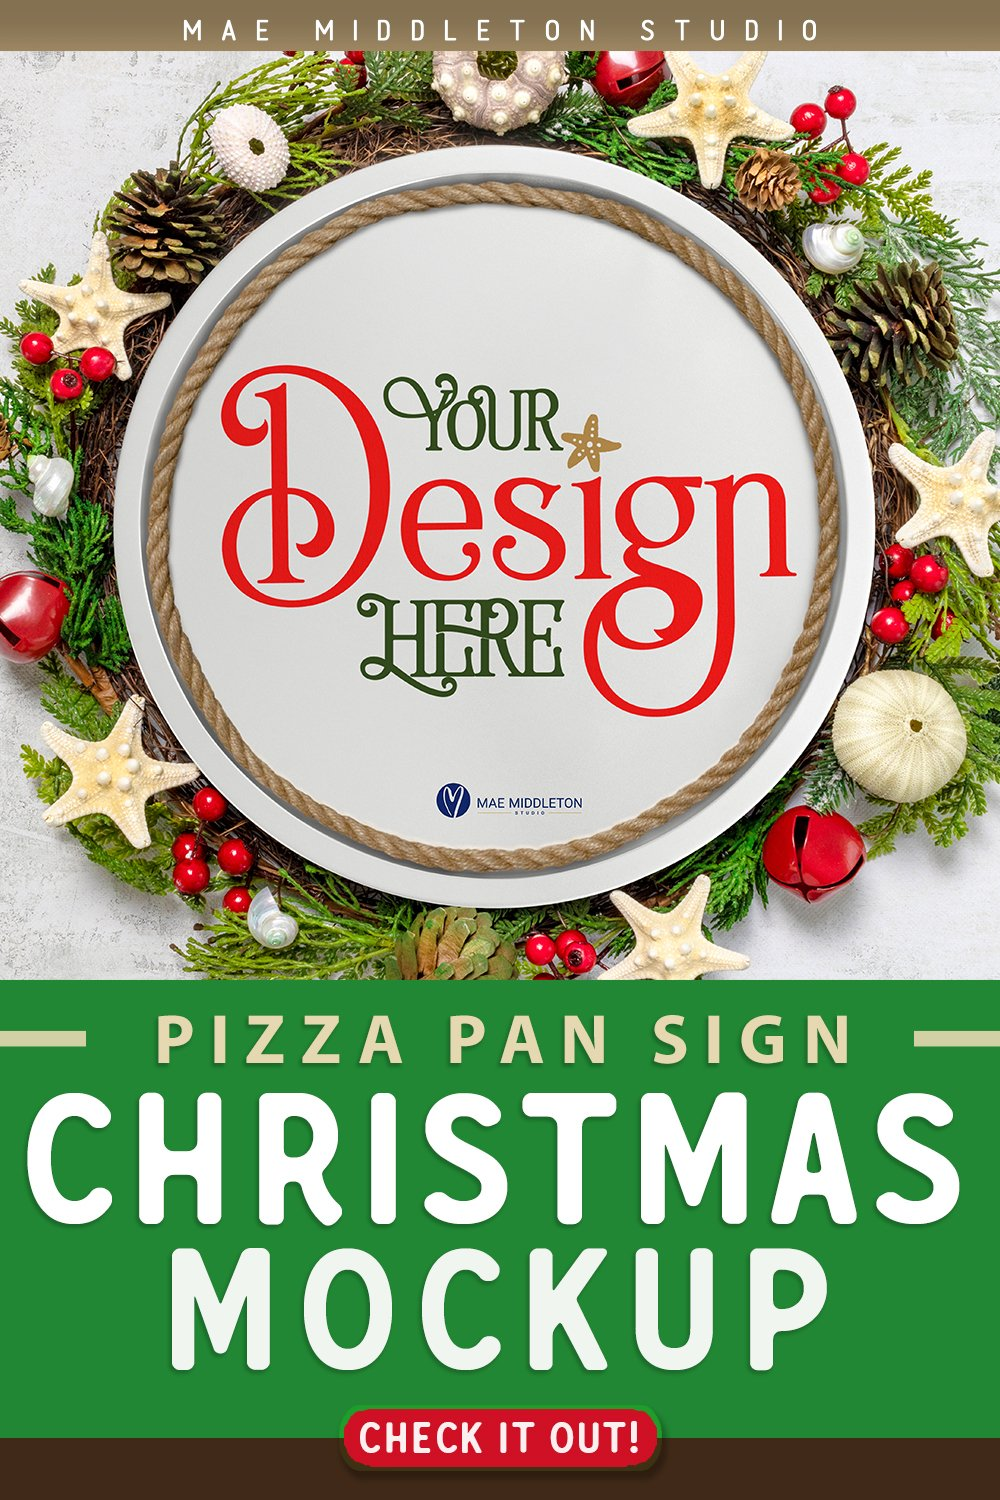 Pizza Pan Sign Mockup Coastal Christmas Styled Photos 1059068 Occasions Design Bundles